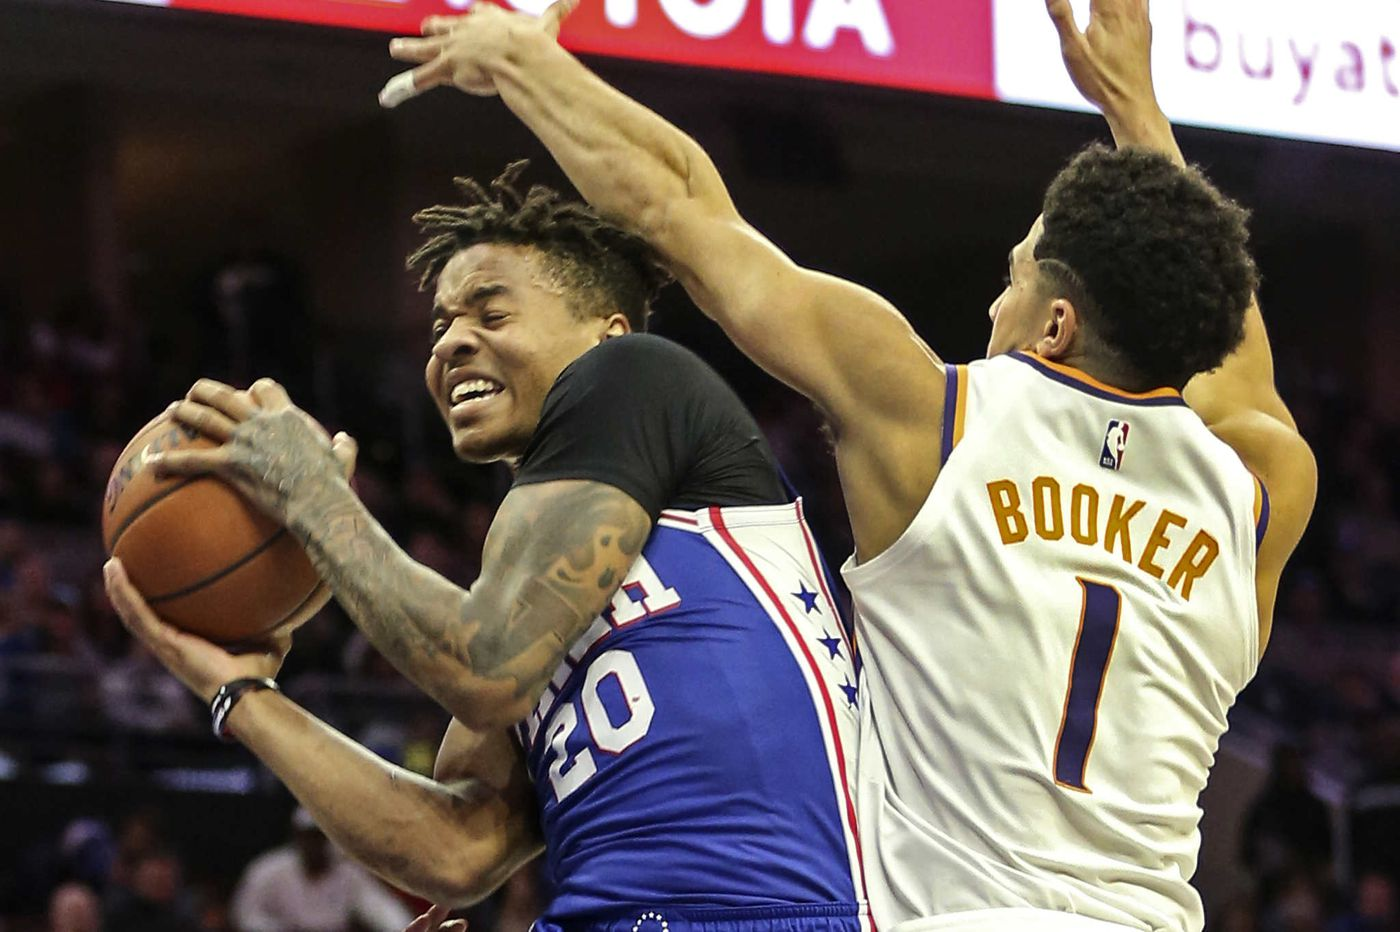 Sixers podcast: Dissecting the Sixers' win and the latest in Markelle Fultz's saga